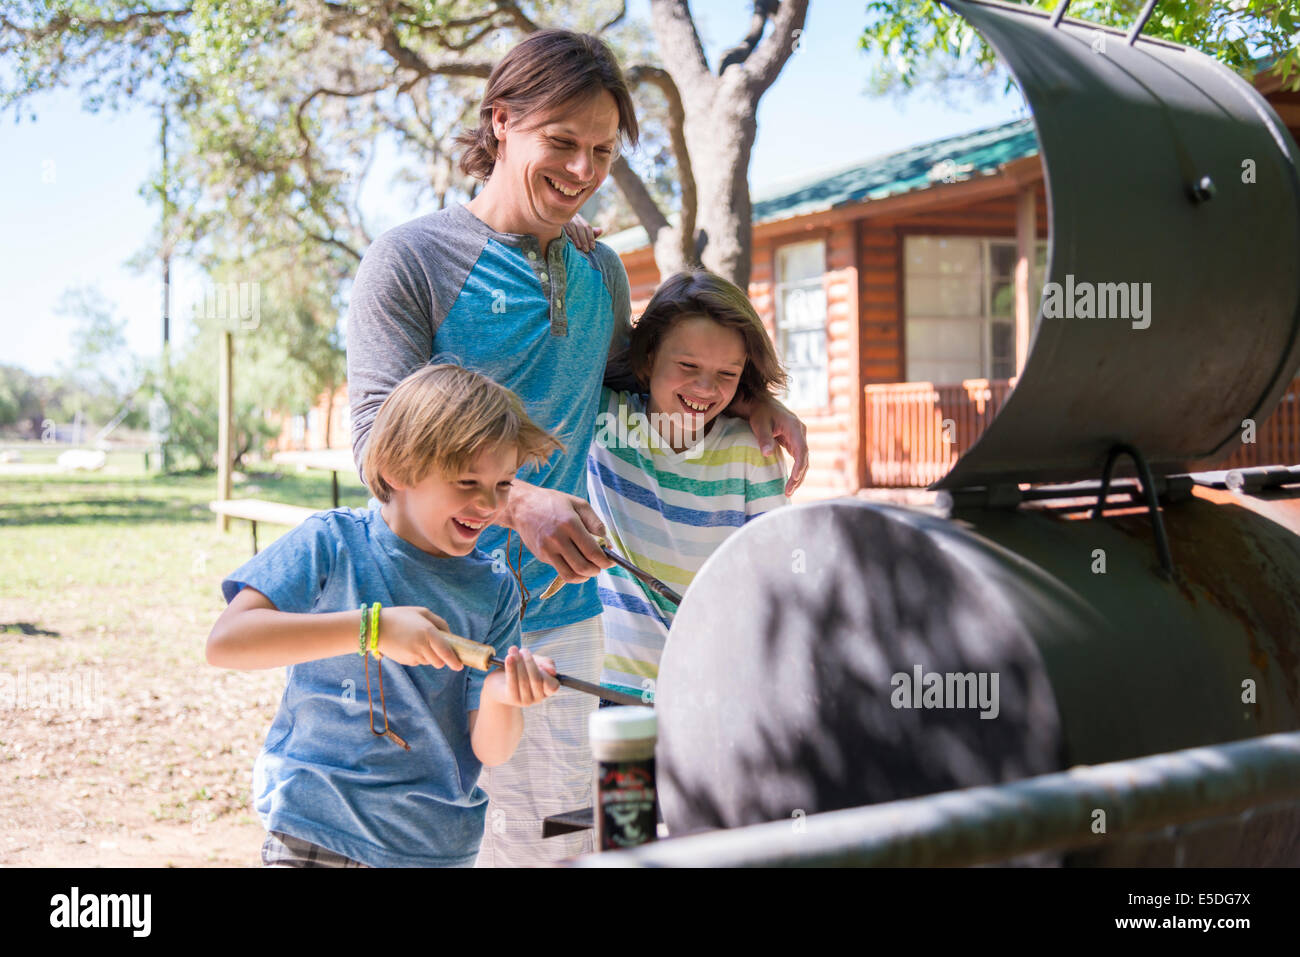 USA, Texas, père de deux fils s'amusant à barbecue Photo Stock